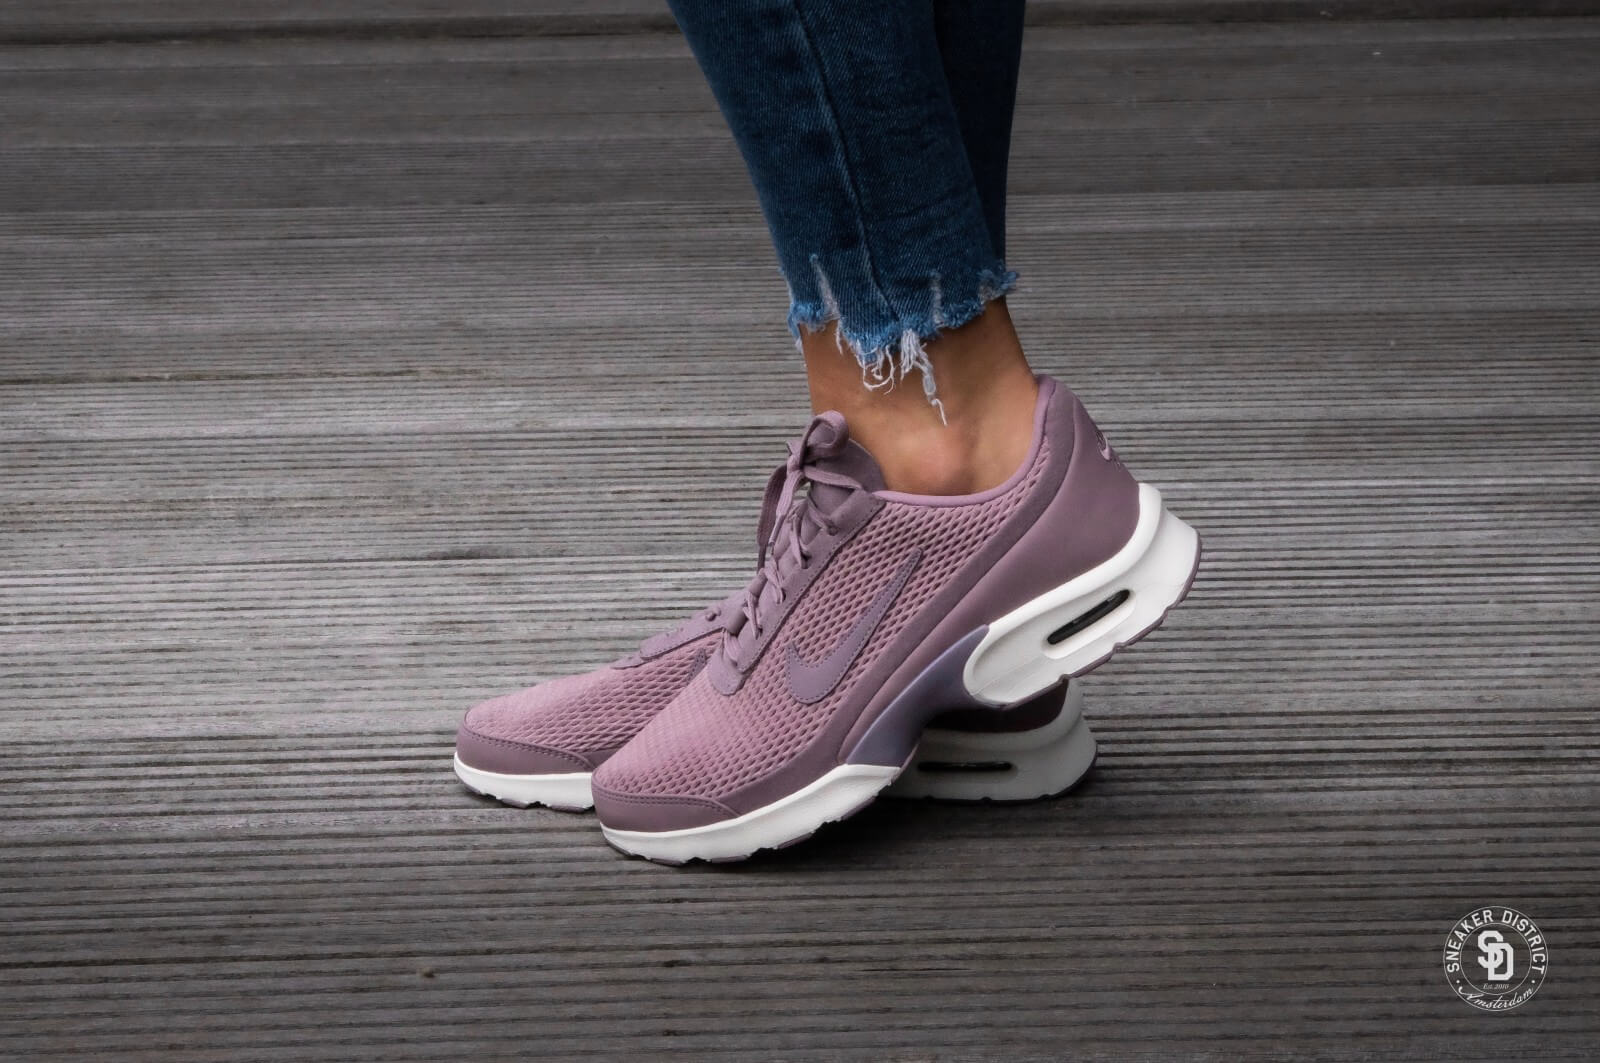 Nike WMNS Air Max Jewell PRM Taupe GreySail 904576 200